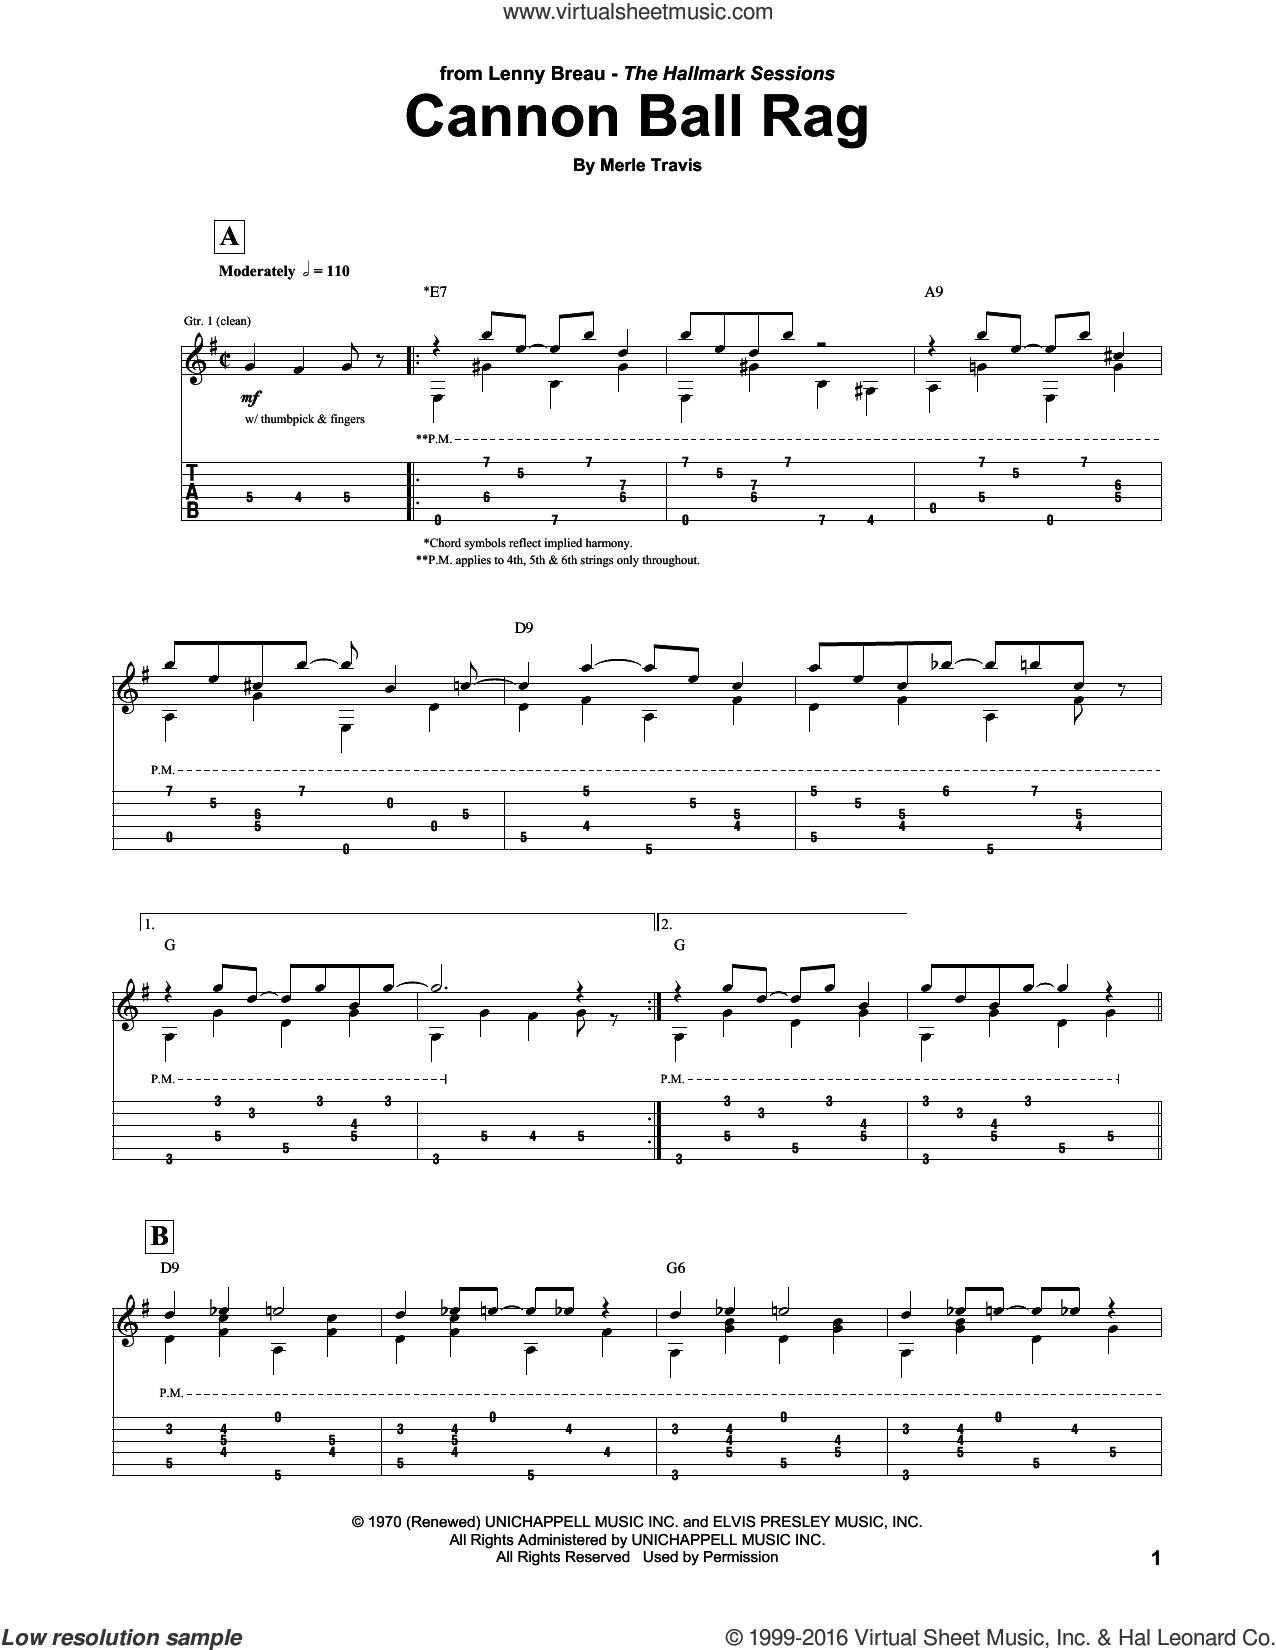 Cannon Ball Rag sheet music for guitar (tablature) by Lenny Breau